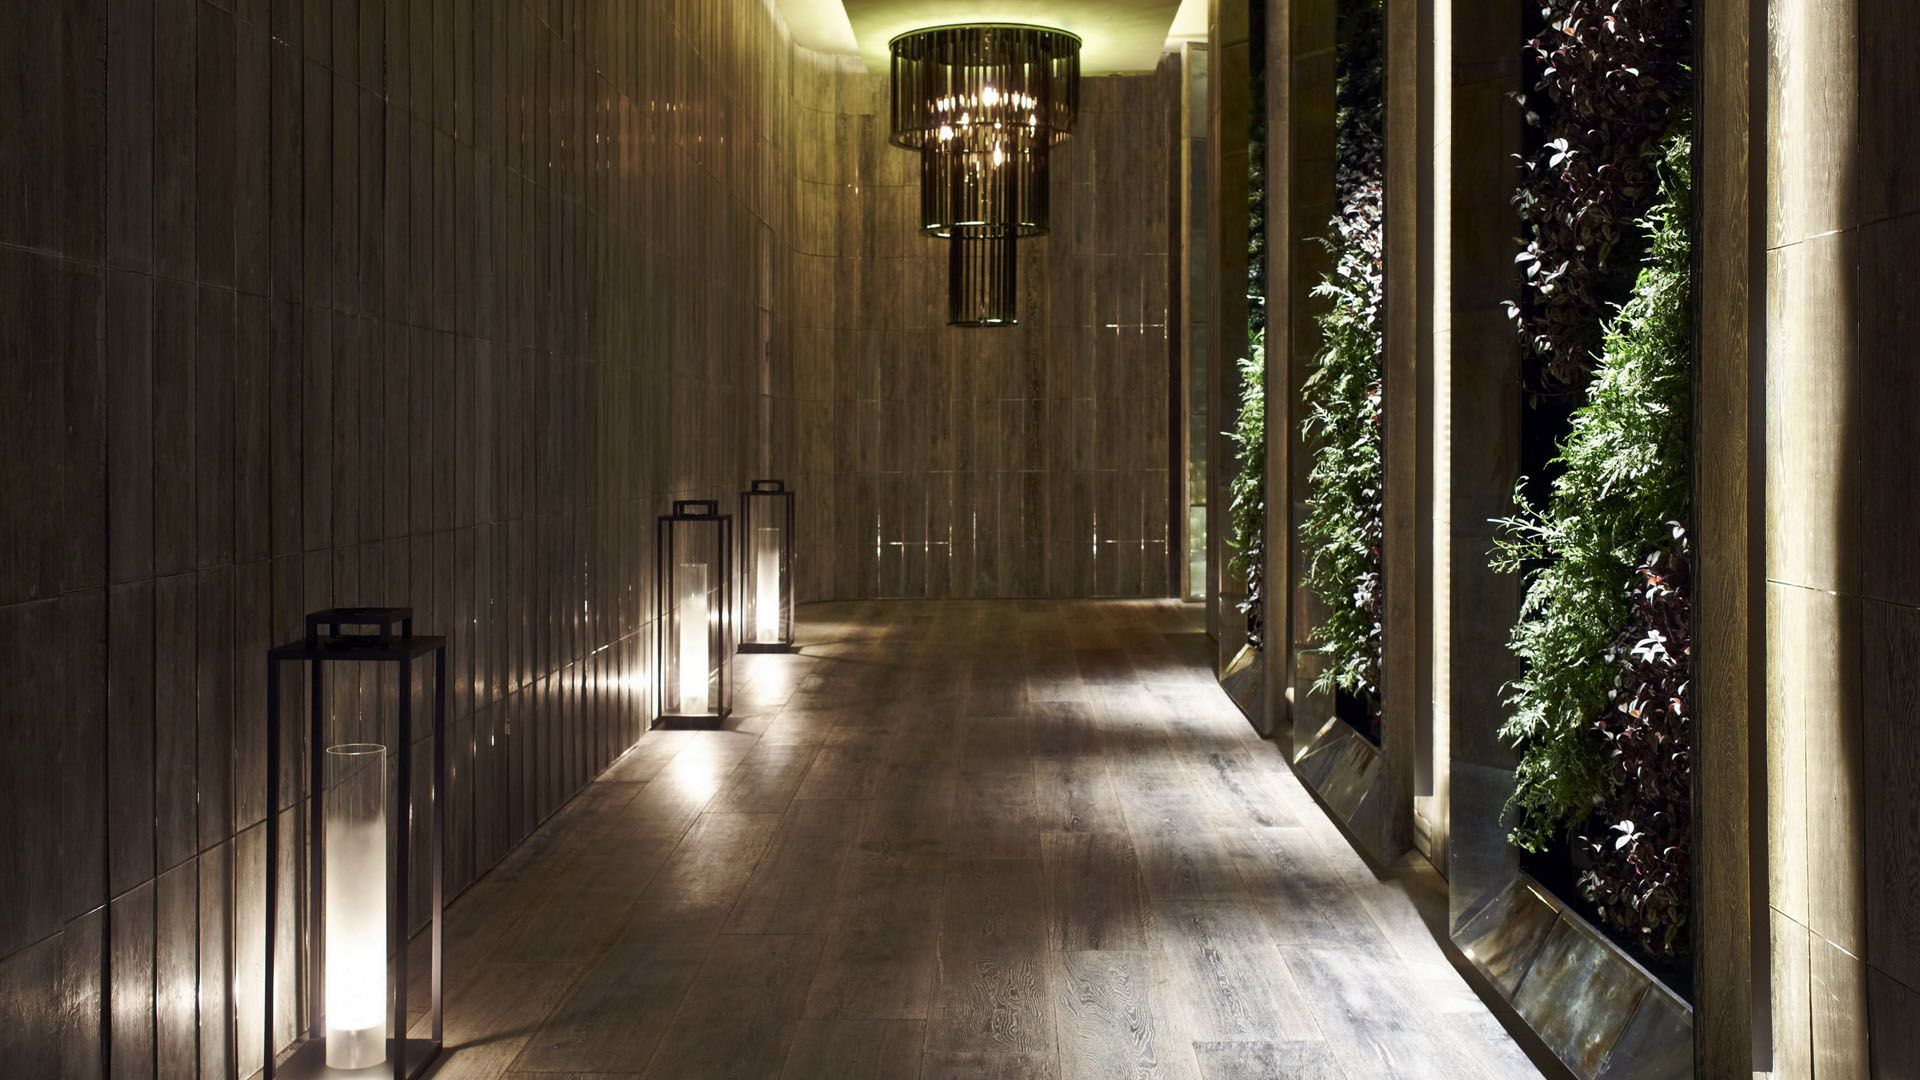 Restaurant-The French Window, Hong Kong | AB Concept | Storytellers of Space